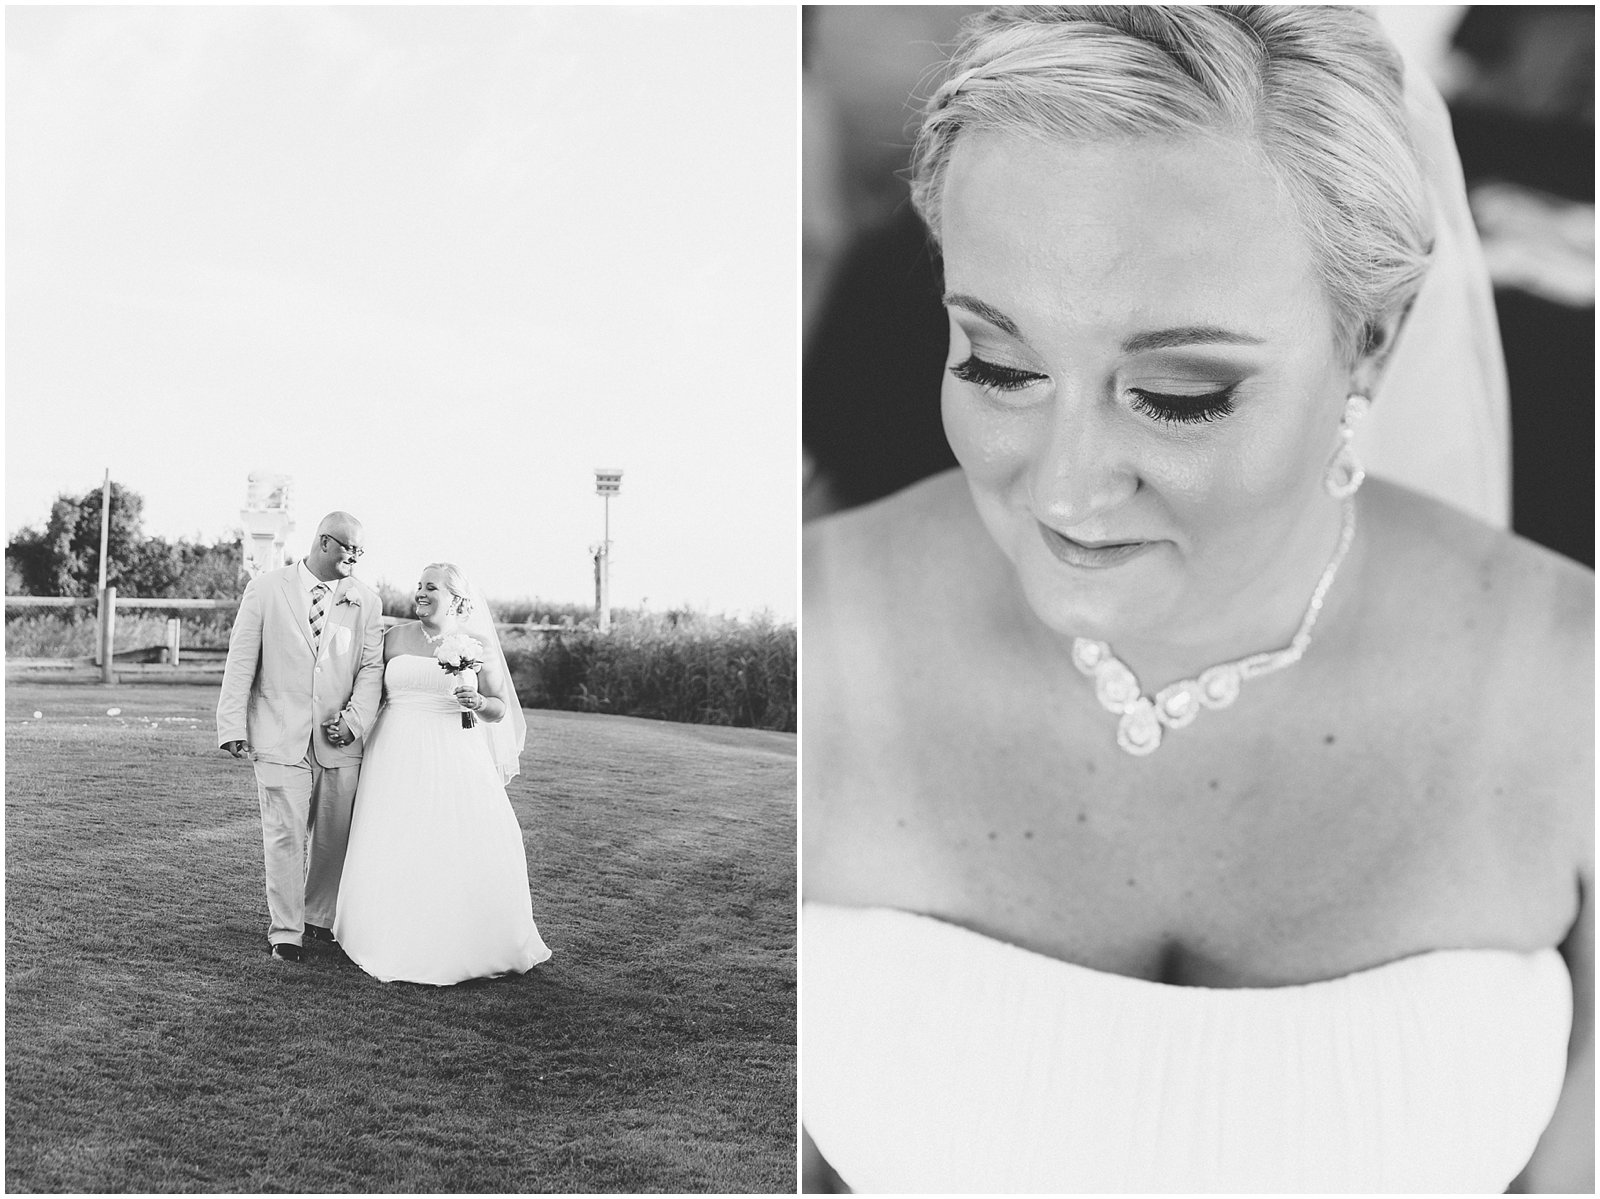 jessica_ryan_photography_wedding_virginia_beach_virginia_wedding_photographer_candid_wedding_photography_lifestyle_photojournalistic_real_moments_0086